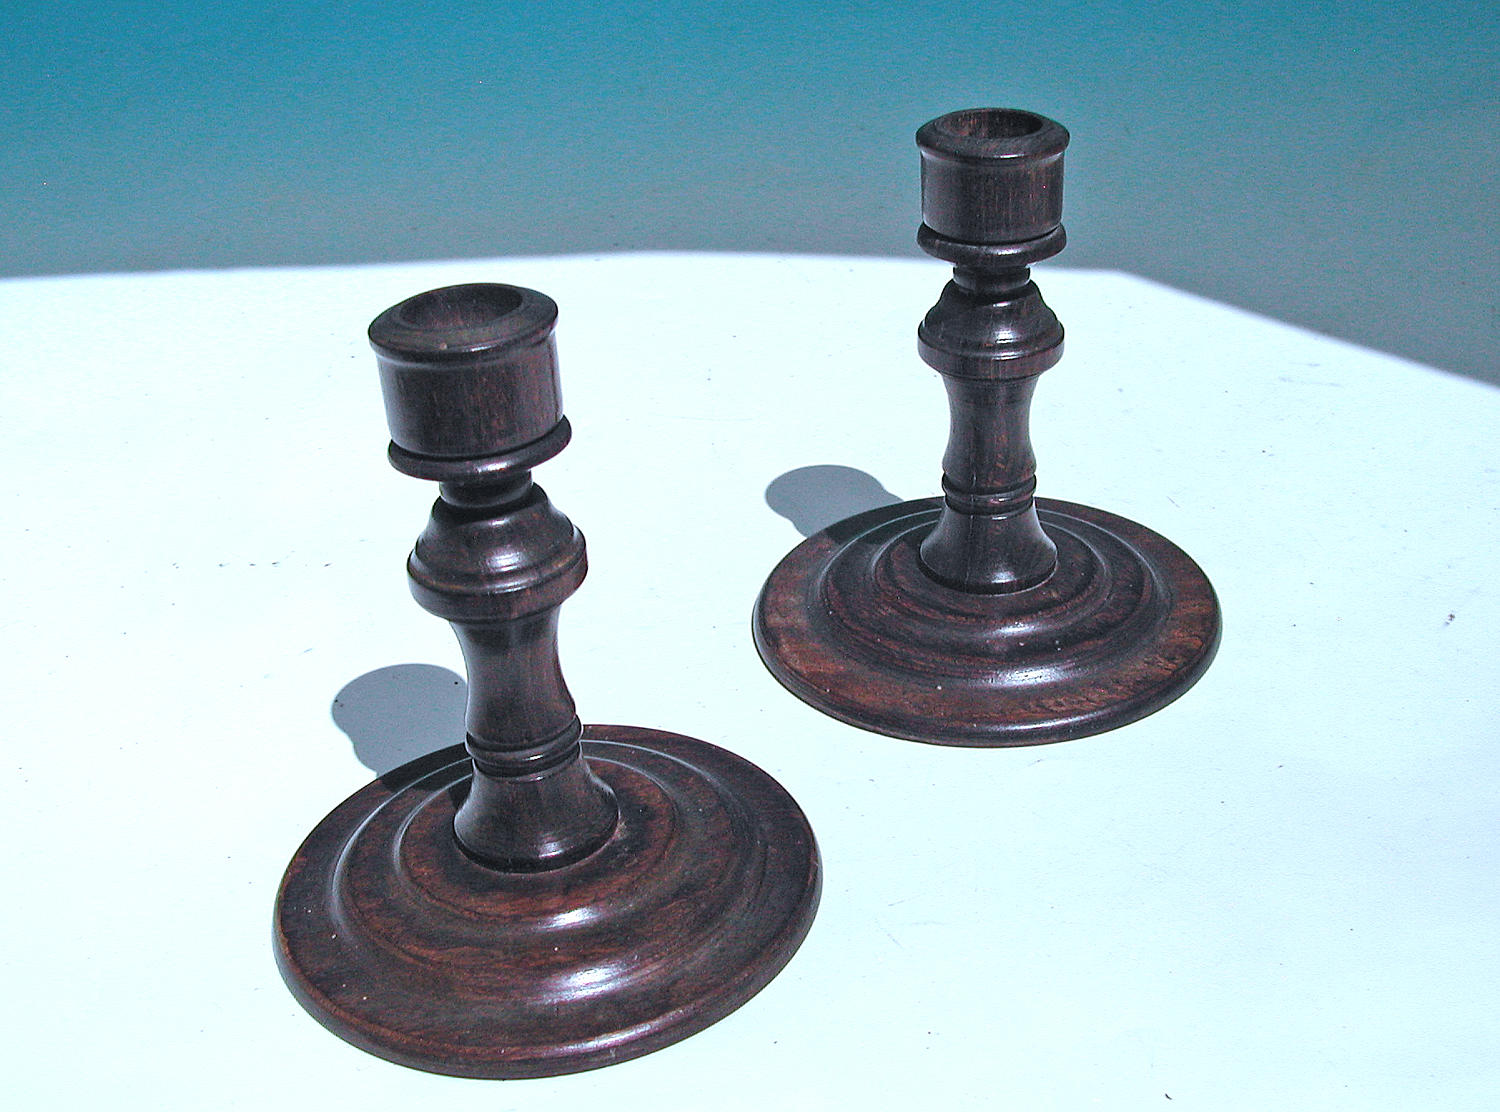 Antique Treen 19thc Pair of Rosewood Candlesticks.  English. C1840-60